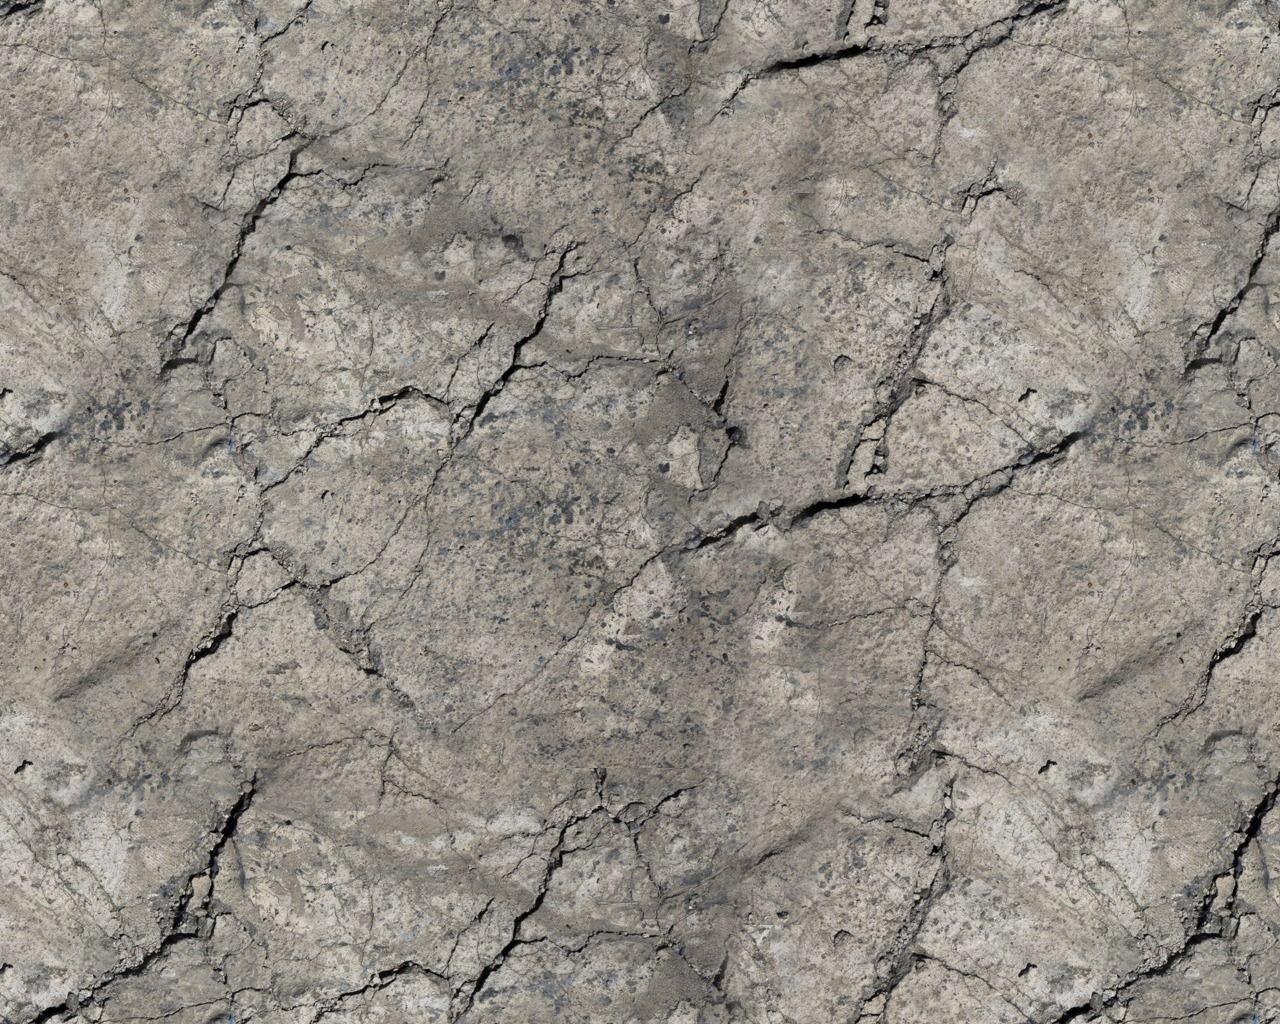 Cracked Rock Download Royalty Free Texture